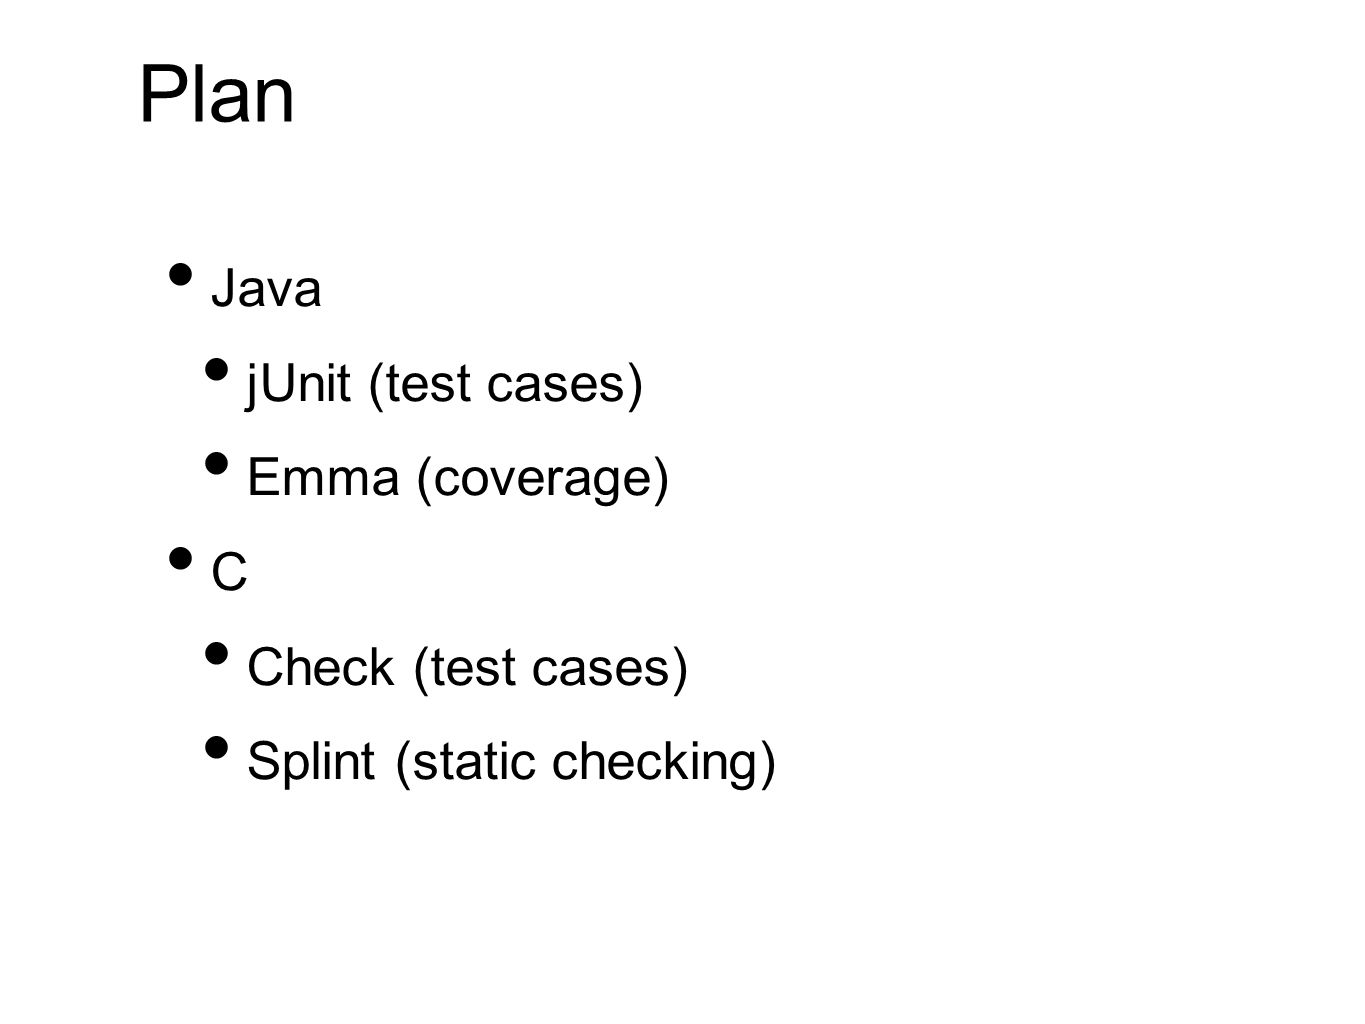 Plan Java jUnit (test cases) Emma (coverage) C Check (test cases) Splint (static checking)